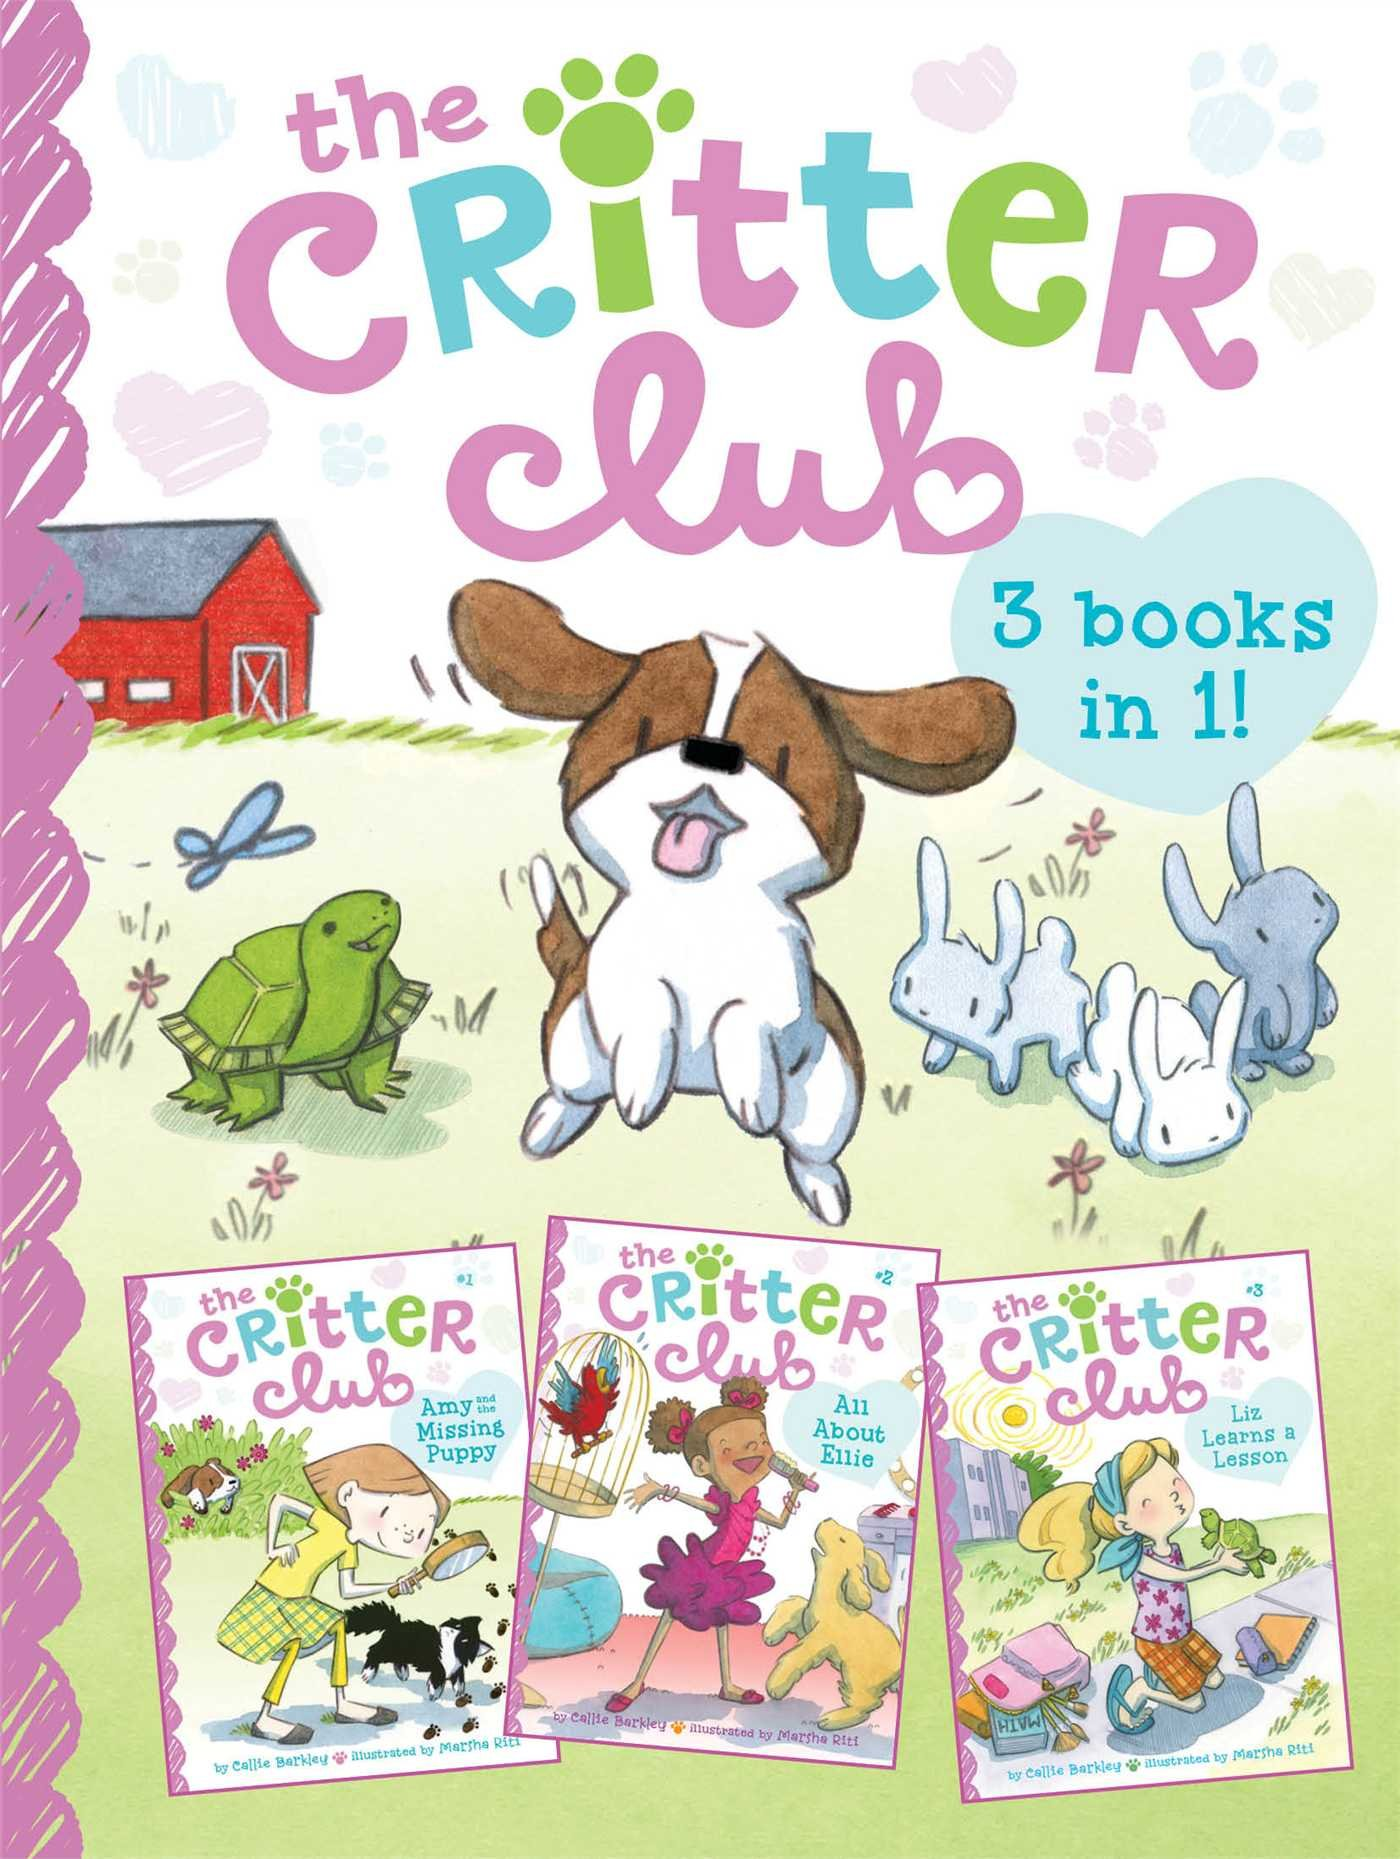 Download The Critter Club: Amy and the Missing Puppy; All About Ellie; Liz Learns a Lesson PDF